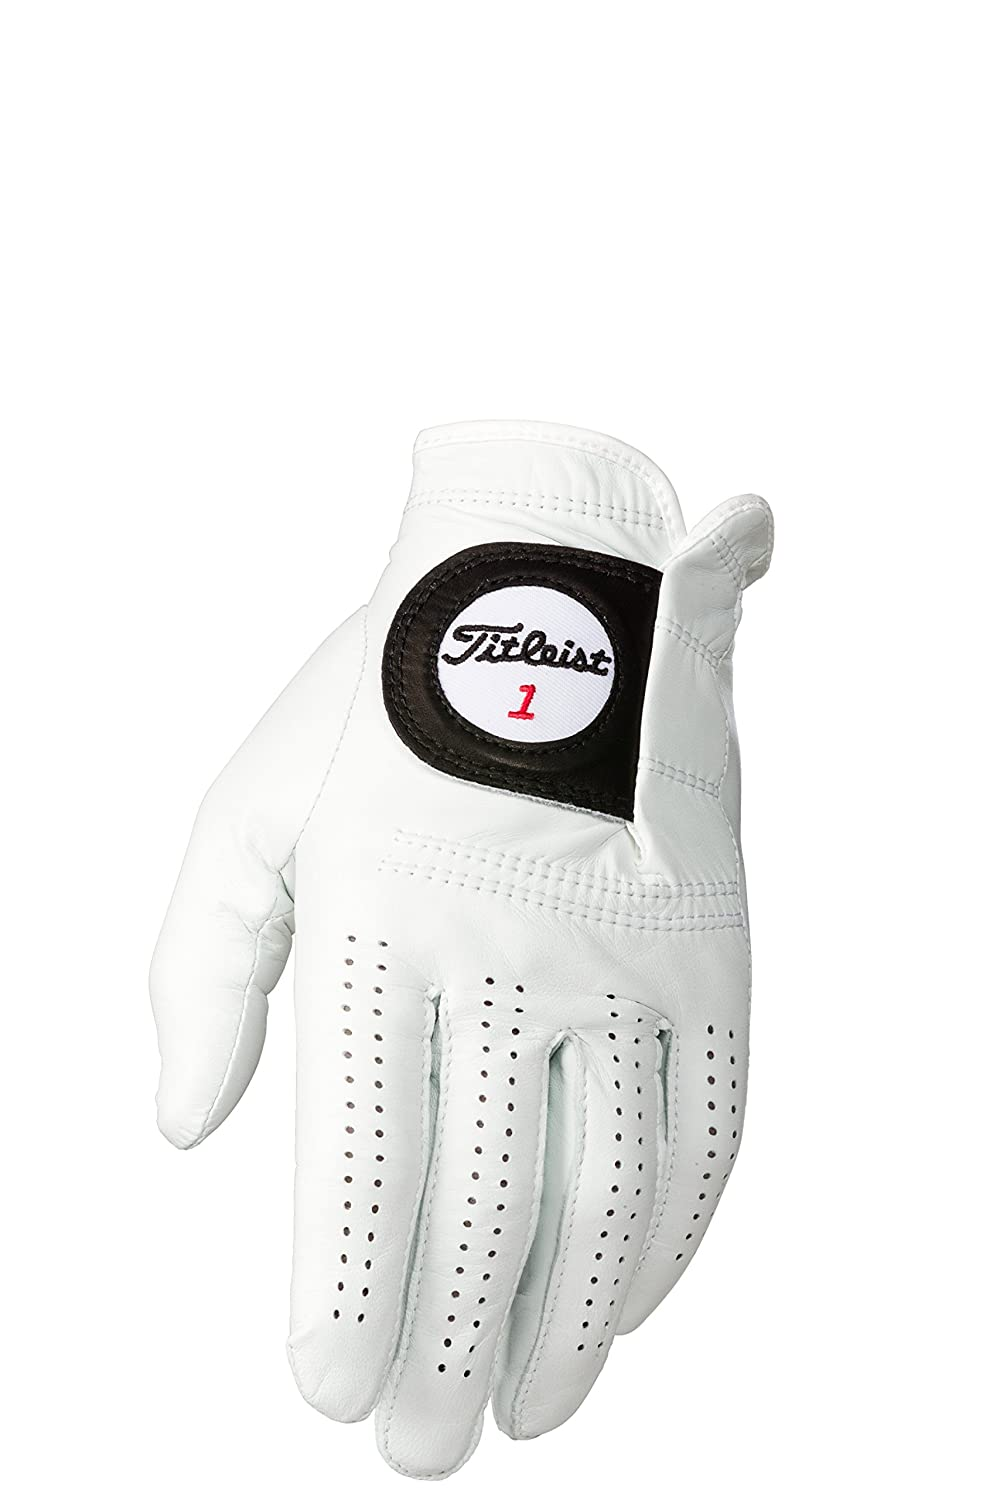 (X-Large, Worn on Left Hand) - Titleist Men's Players Golf Glove   B00OBTRI4C